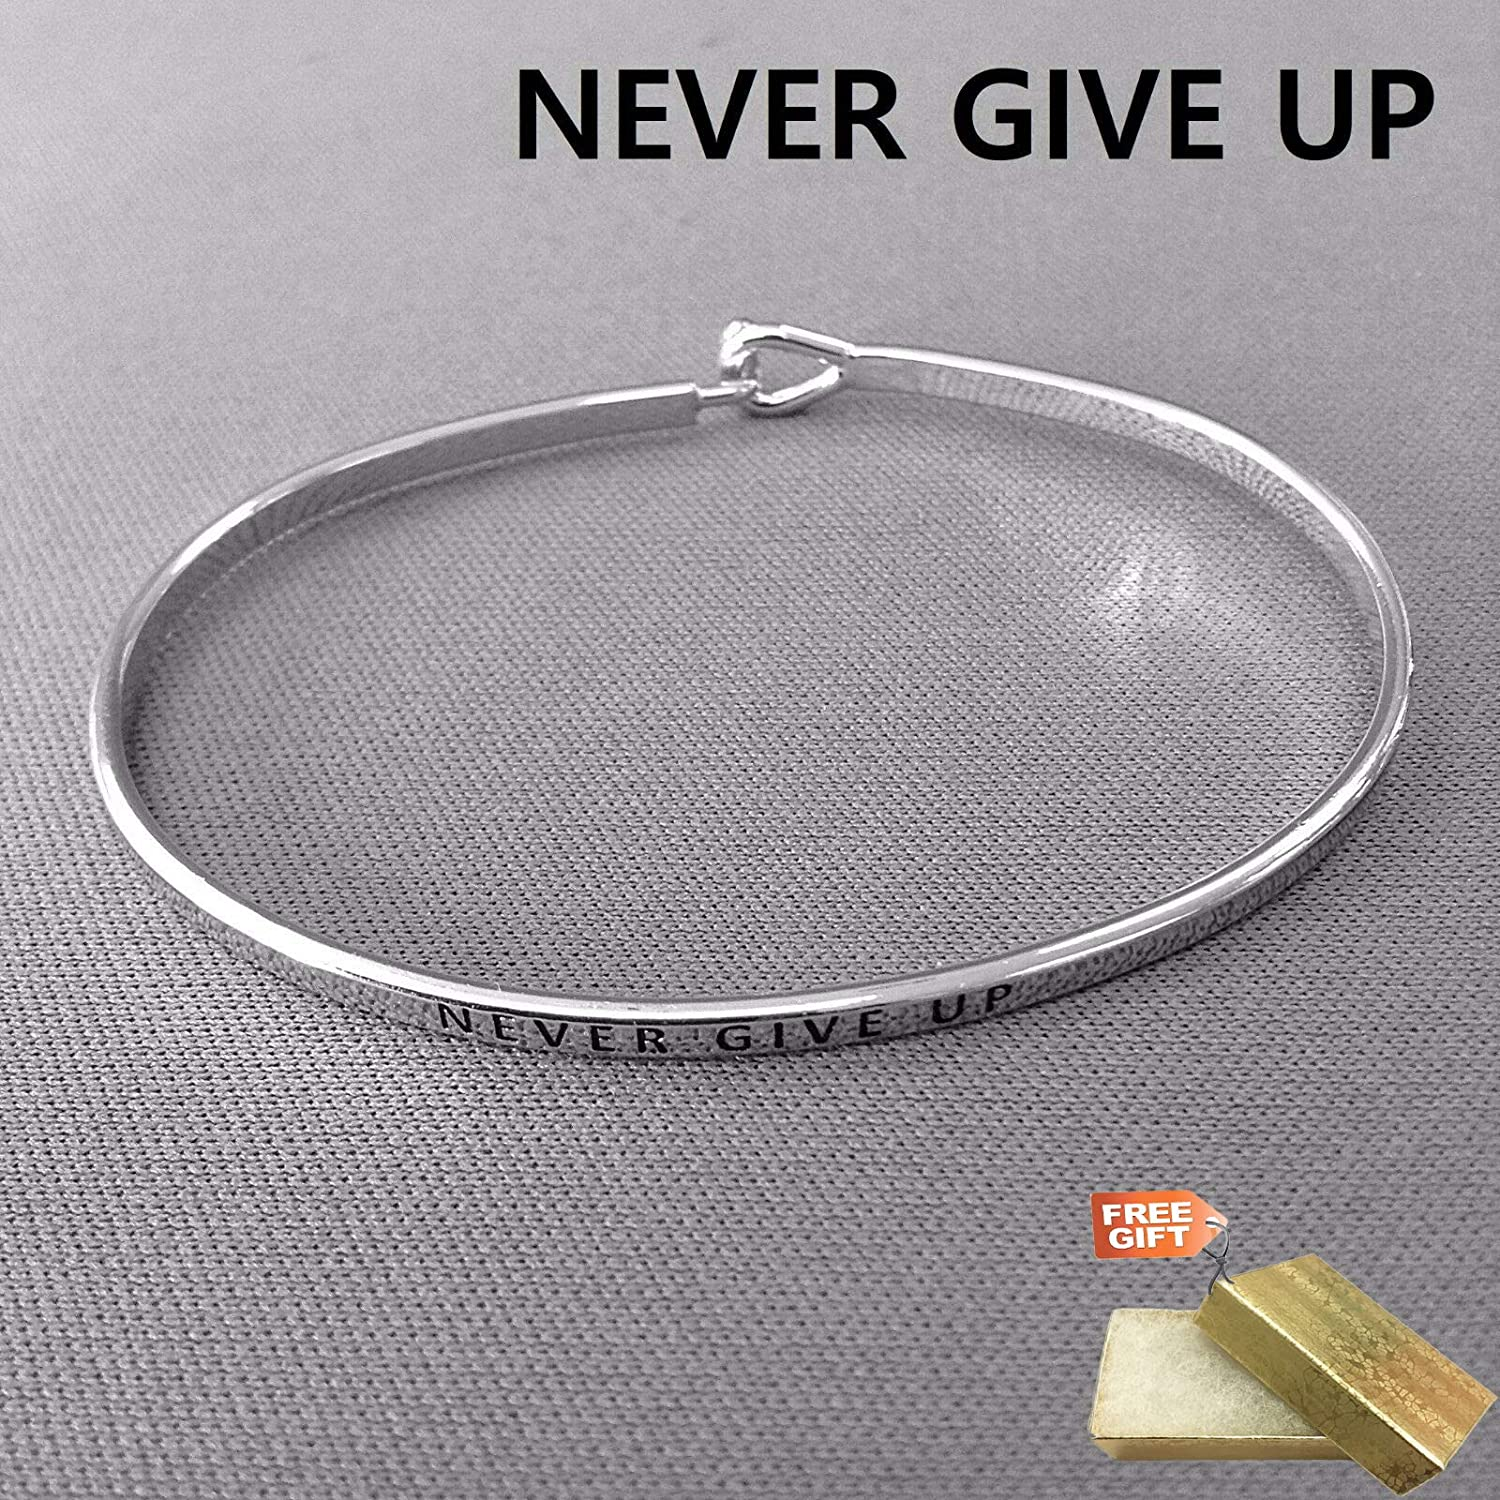 Gold Cotton Filled Gift Box for Free Silver Finished NEVER GIVE UP Statement Message Engraved Brass Bangle Fashion Jewelry Bracelet For Women